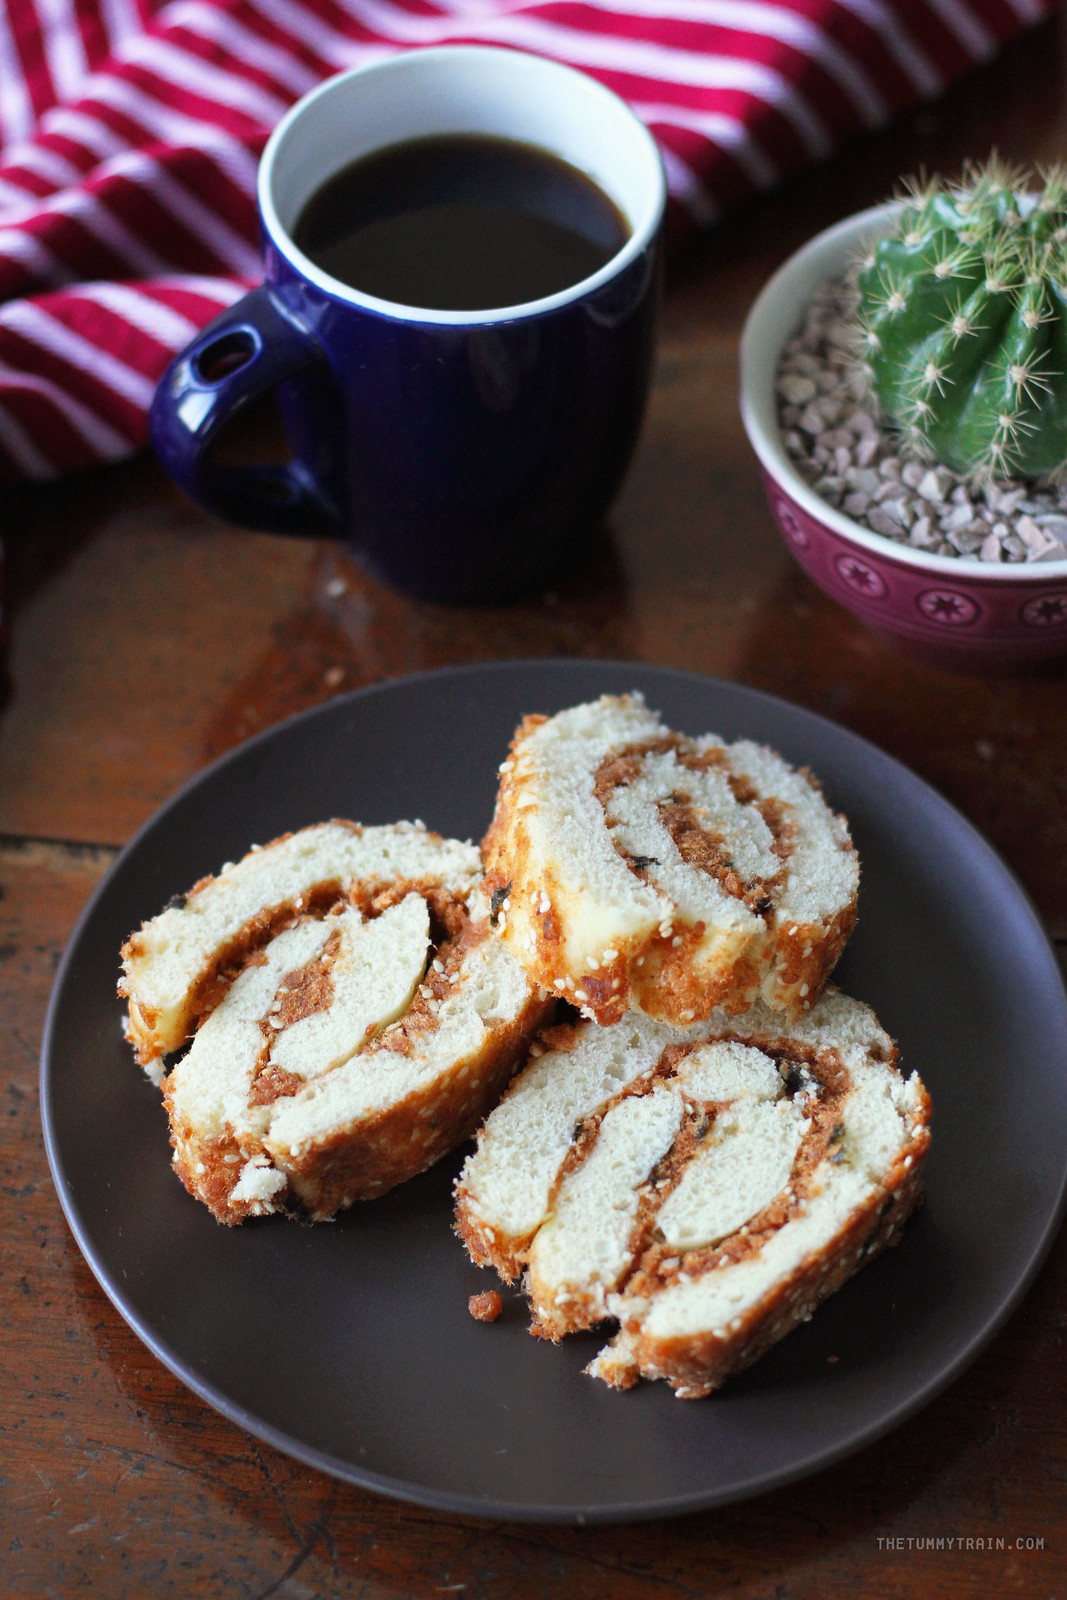 31617569674 e07c9642ea h - Sharing my love for Asian Pork Floss Rolls this Chinese New Year